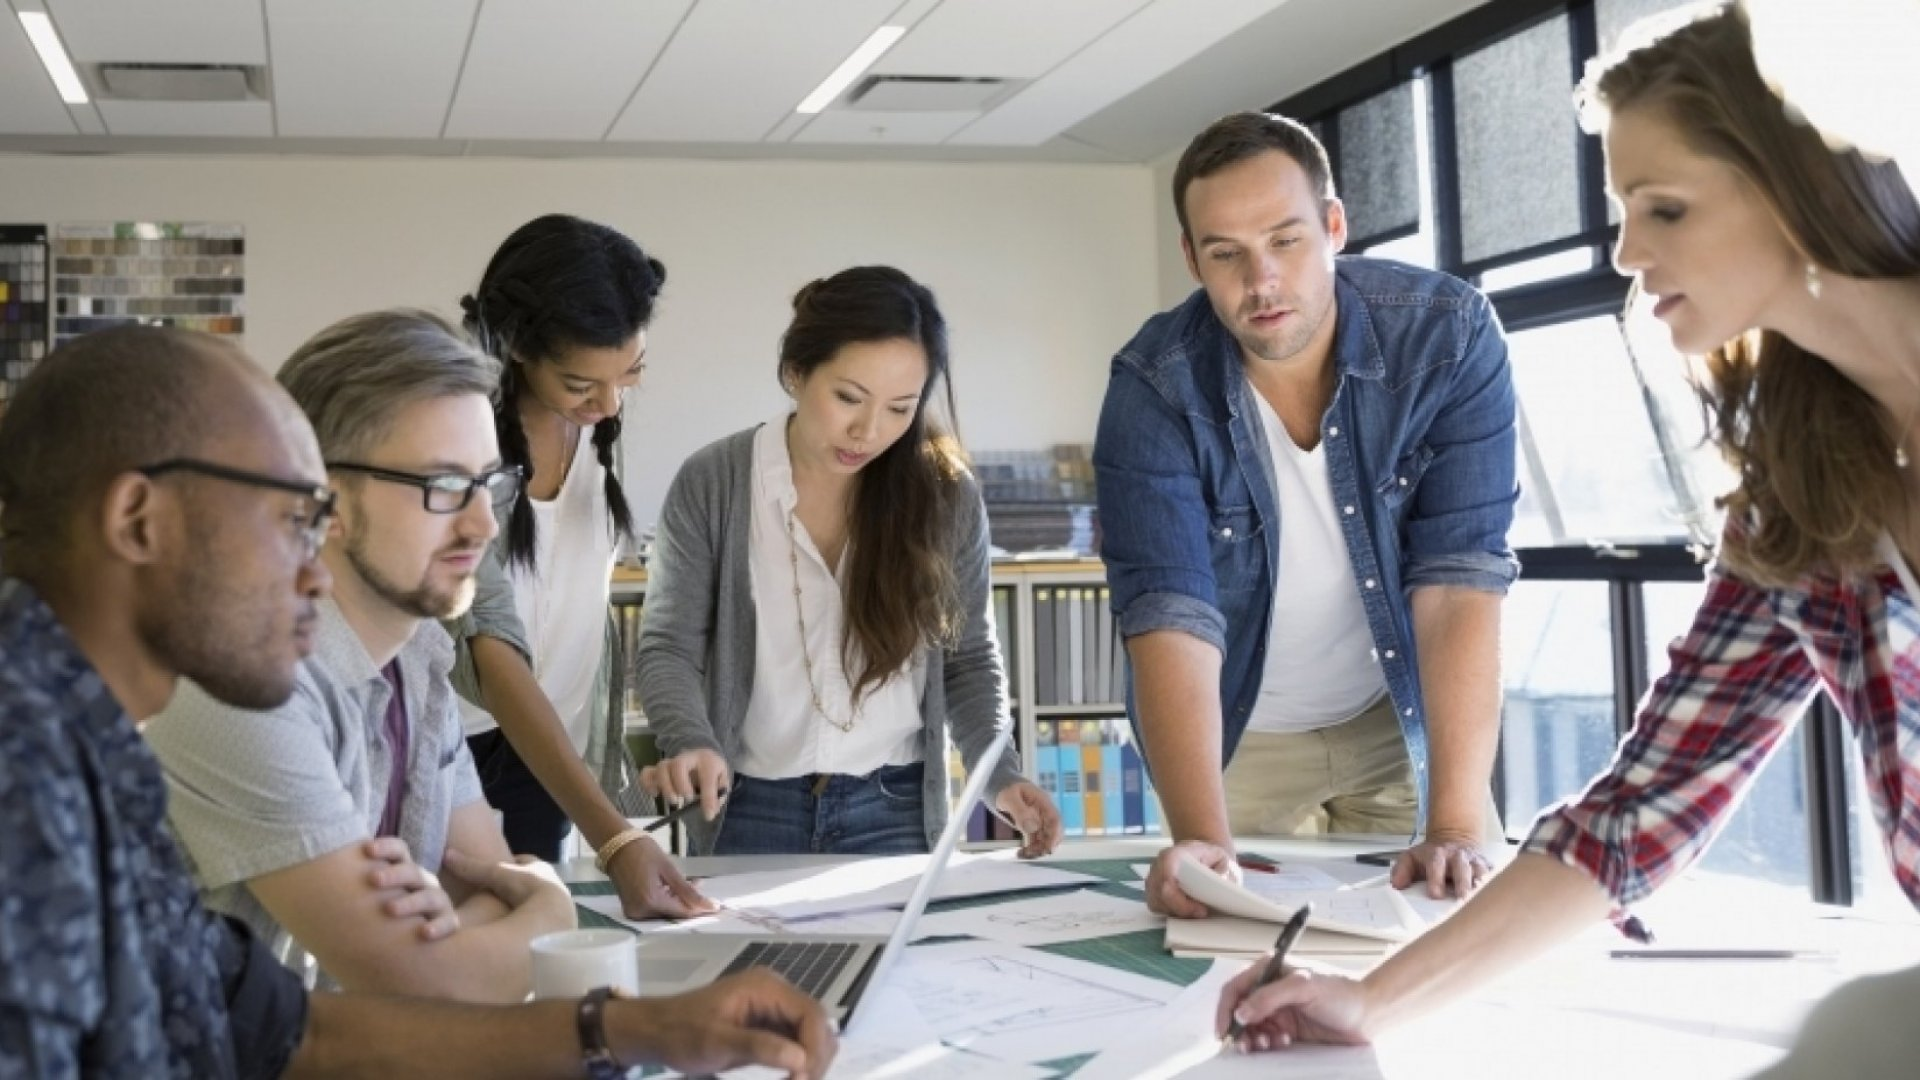 How to Create a Great Corporate Culture By Thinking Small